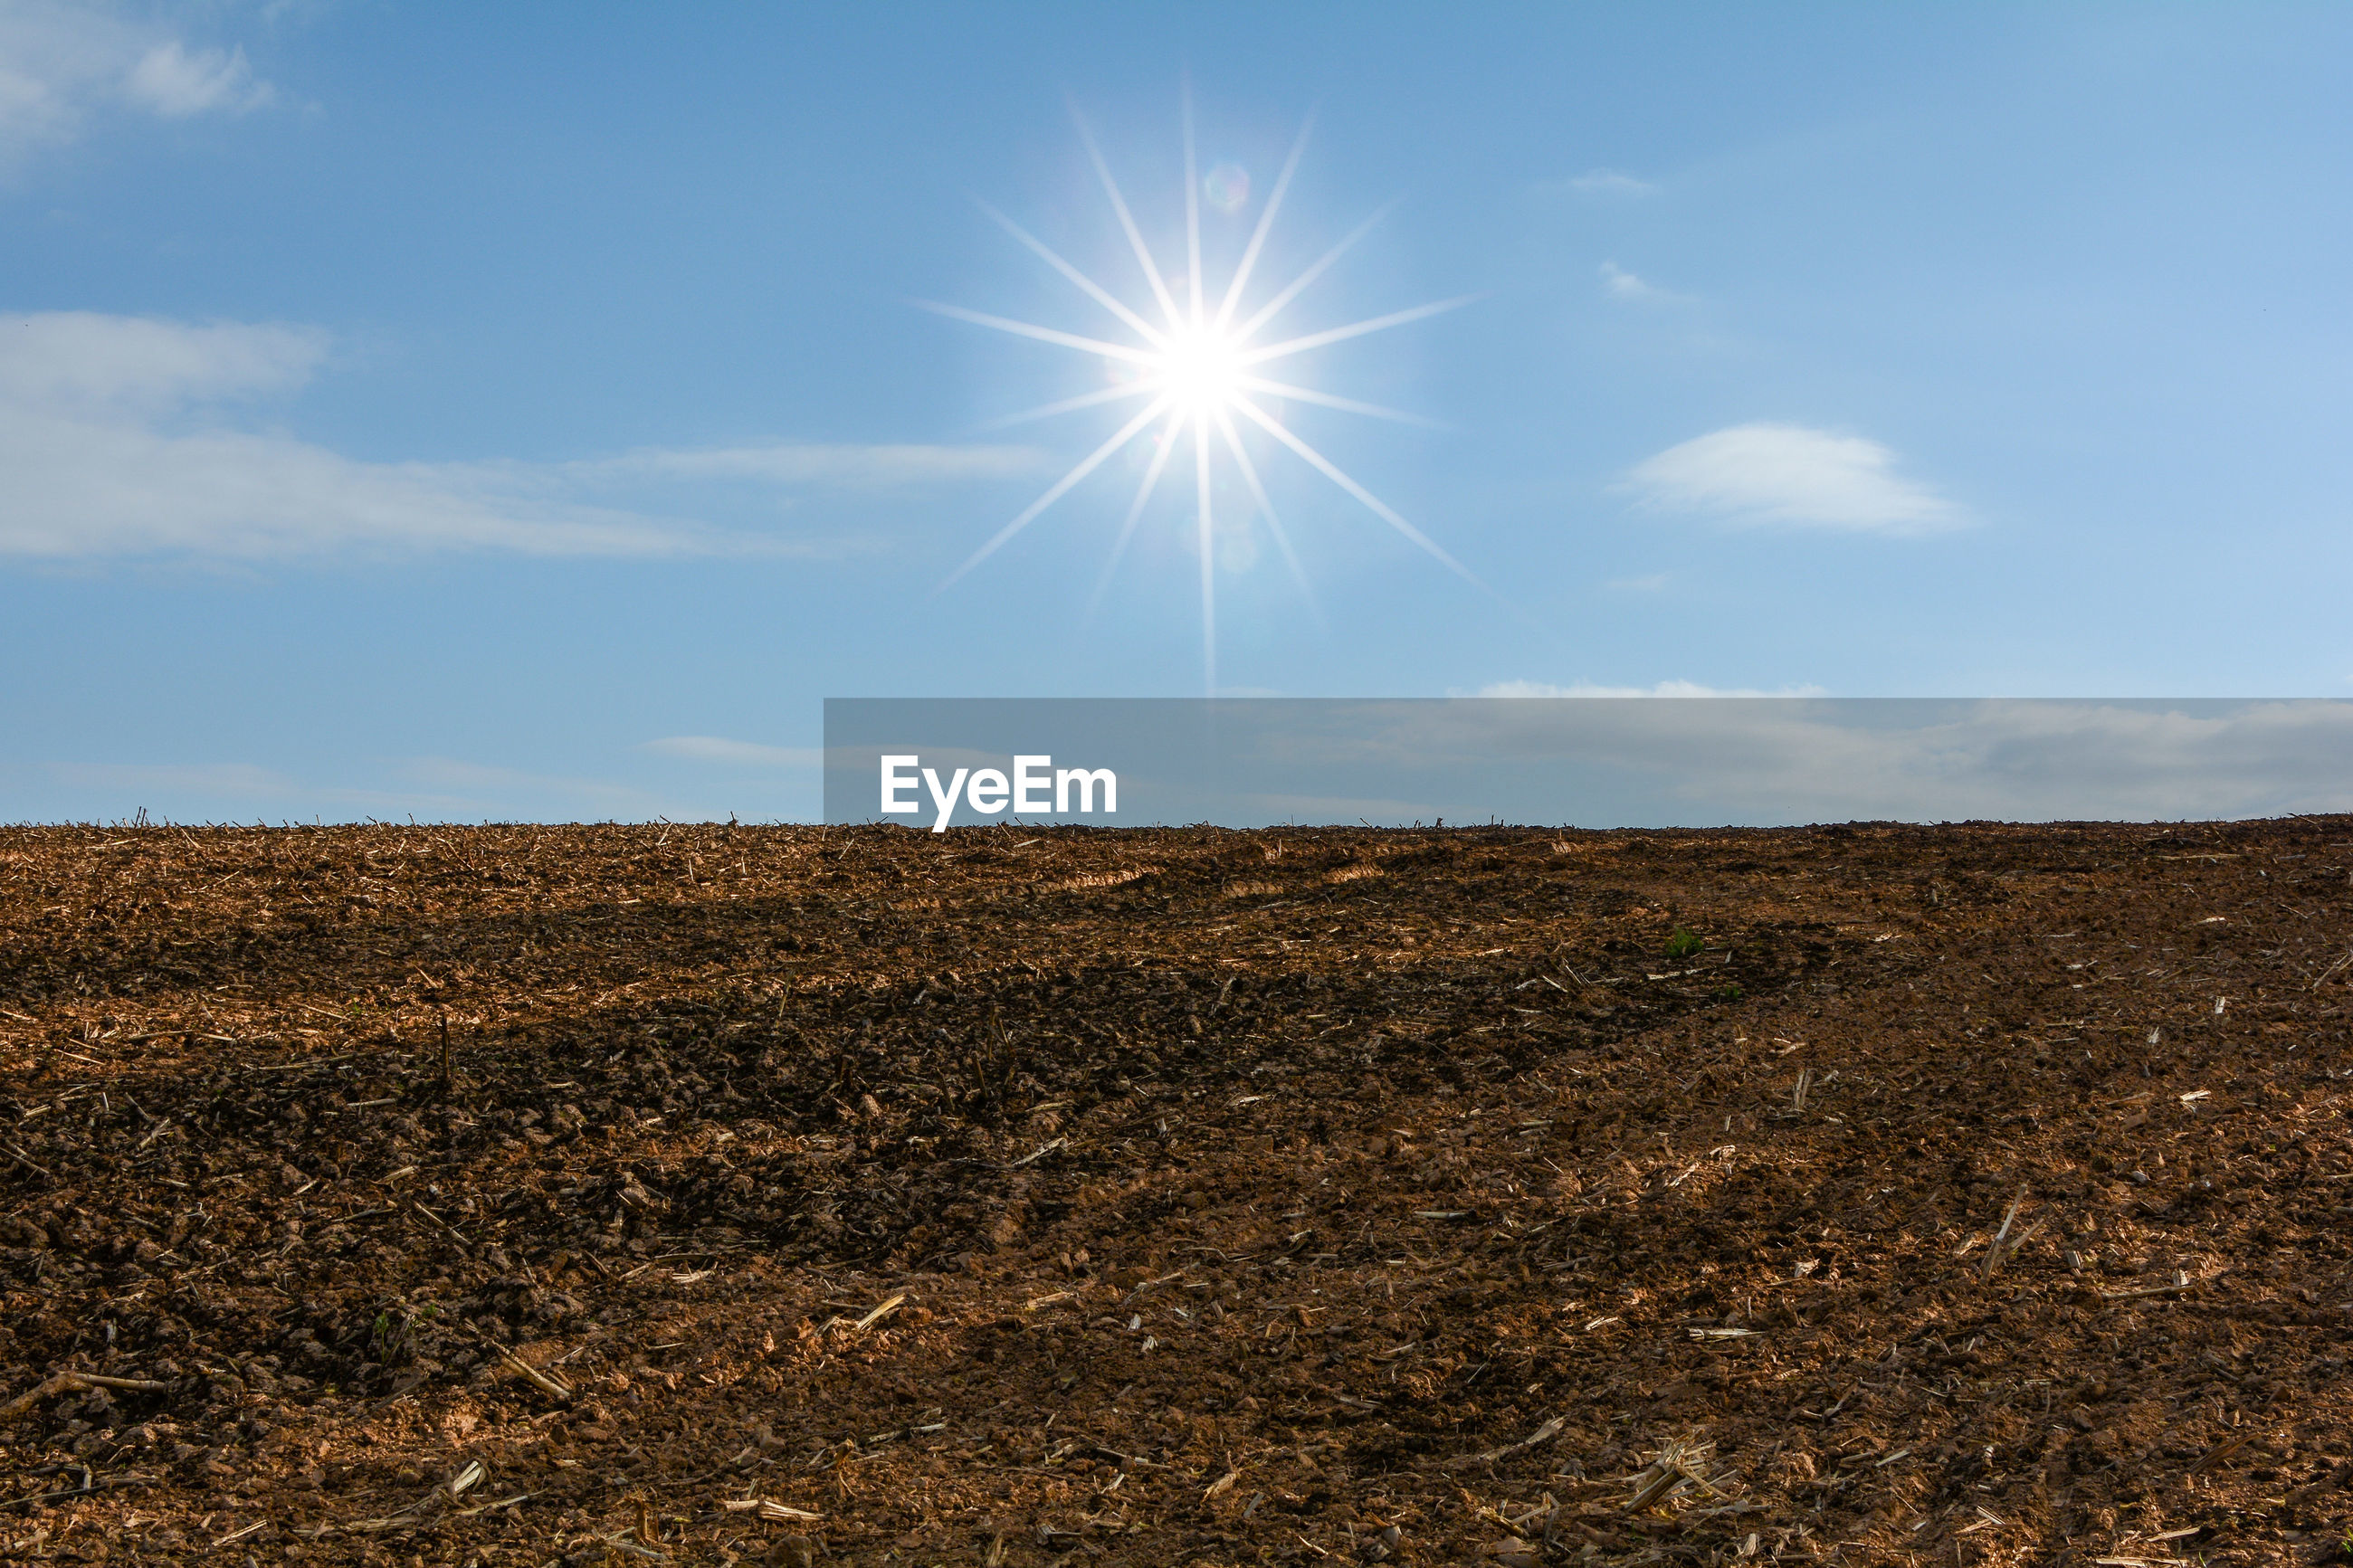 Soil from a cultivated field on a dry day with blue sky and copy space